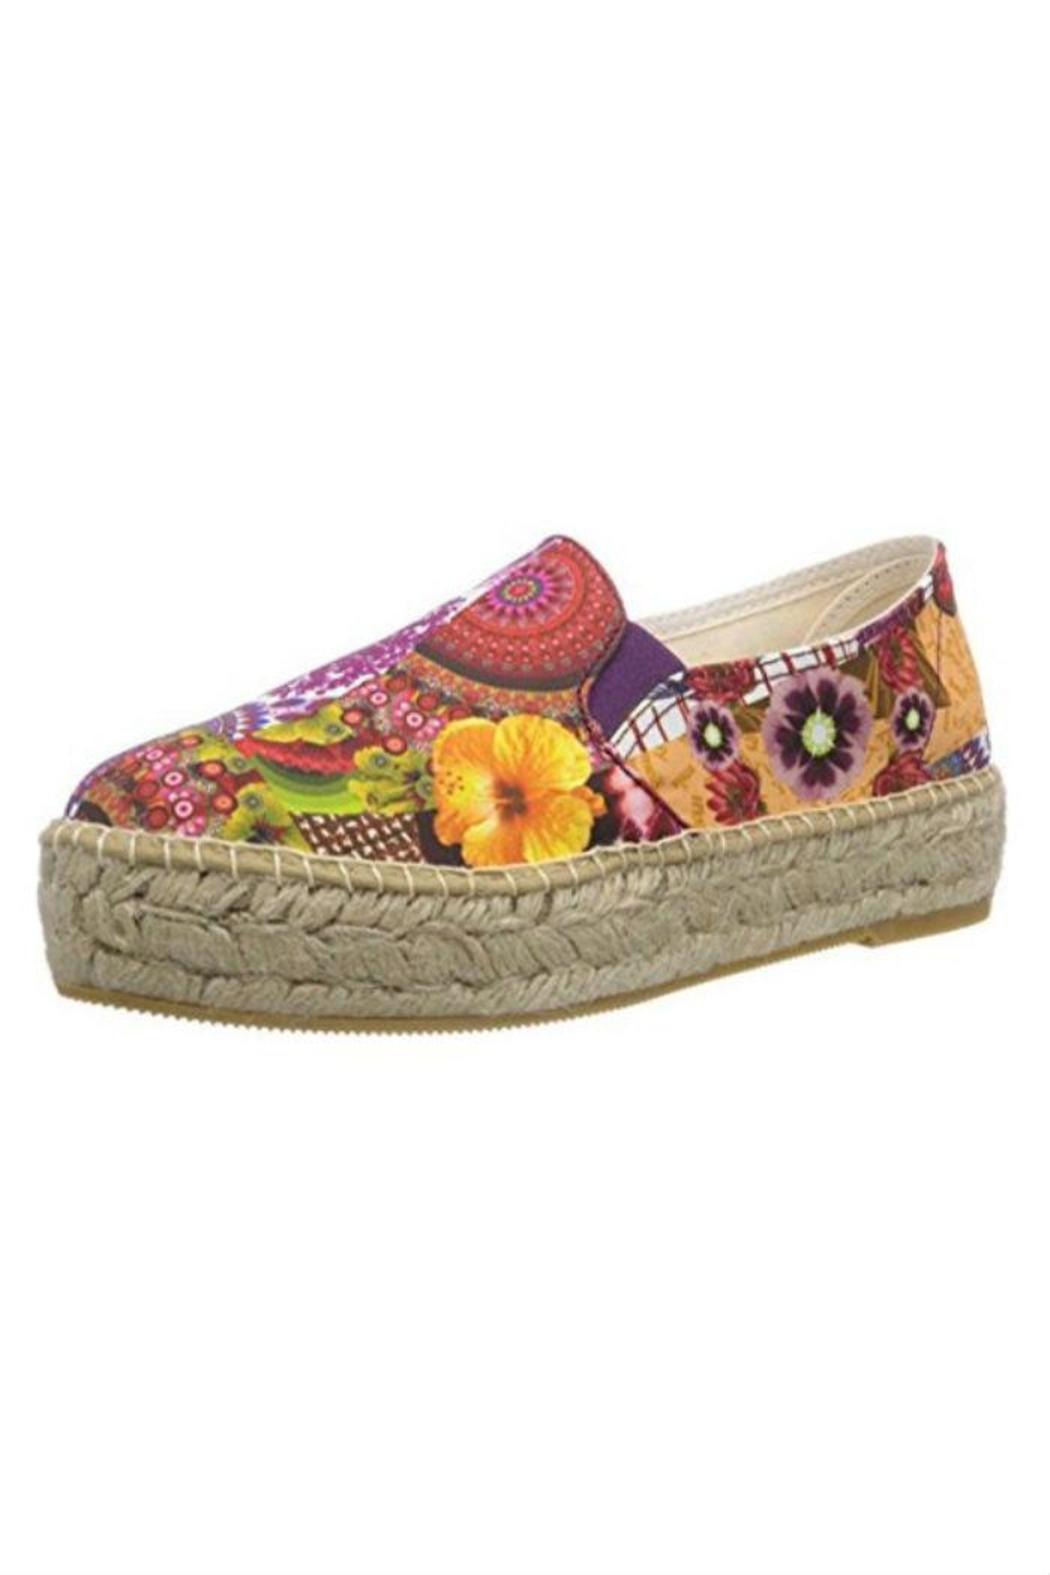 desigual colorful canvas shoe from st george by the nook